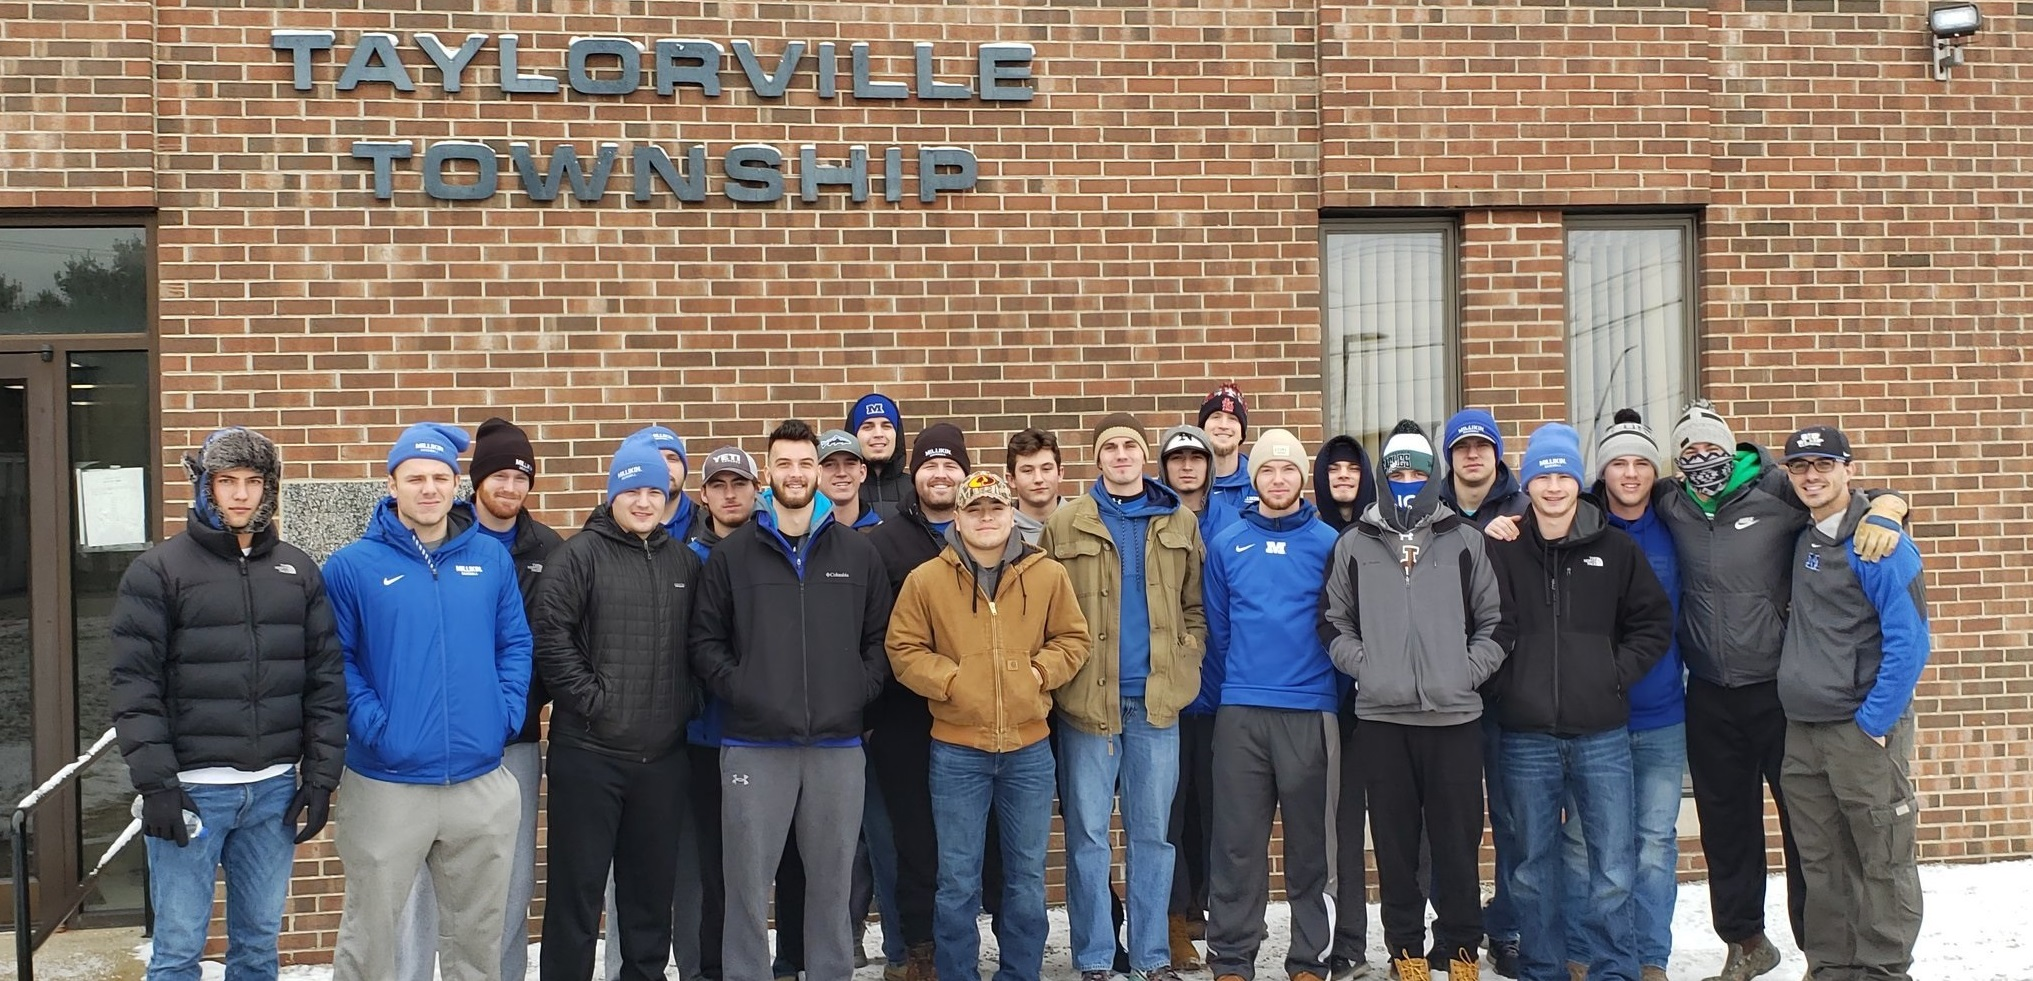 Millikin University Baseball Team